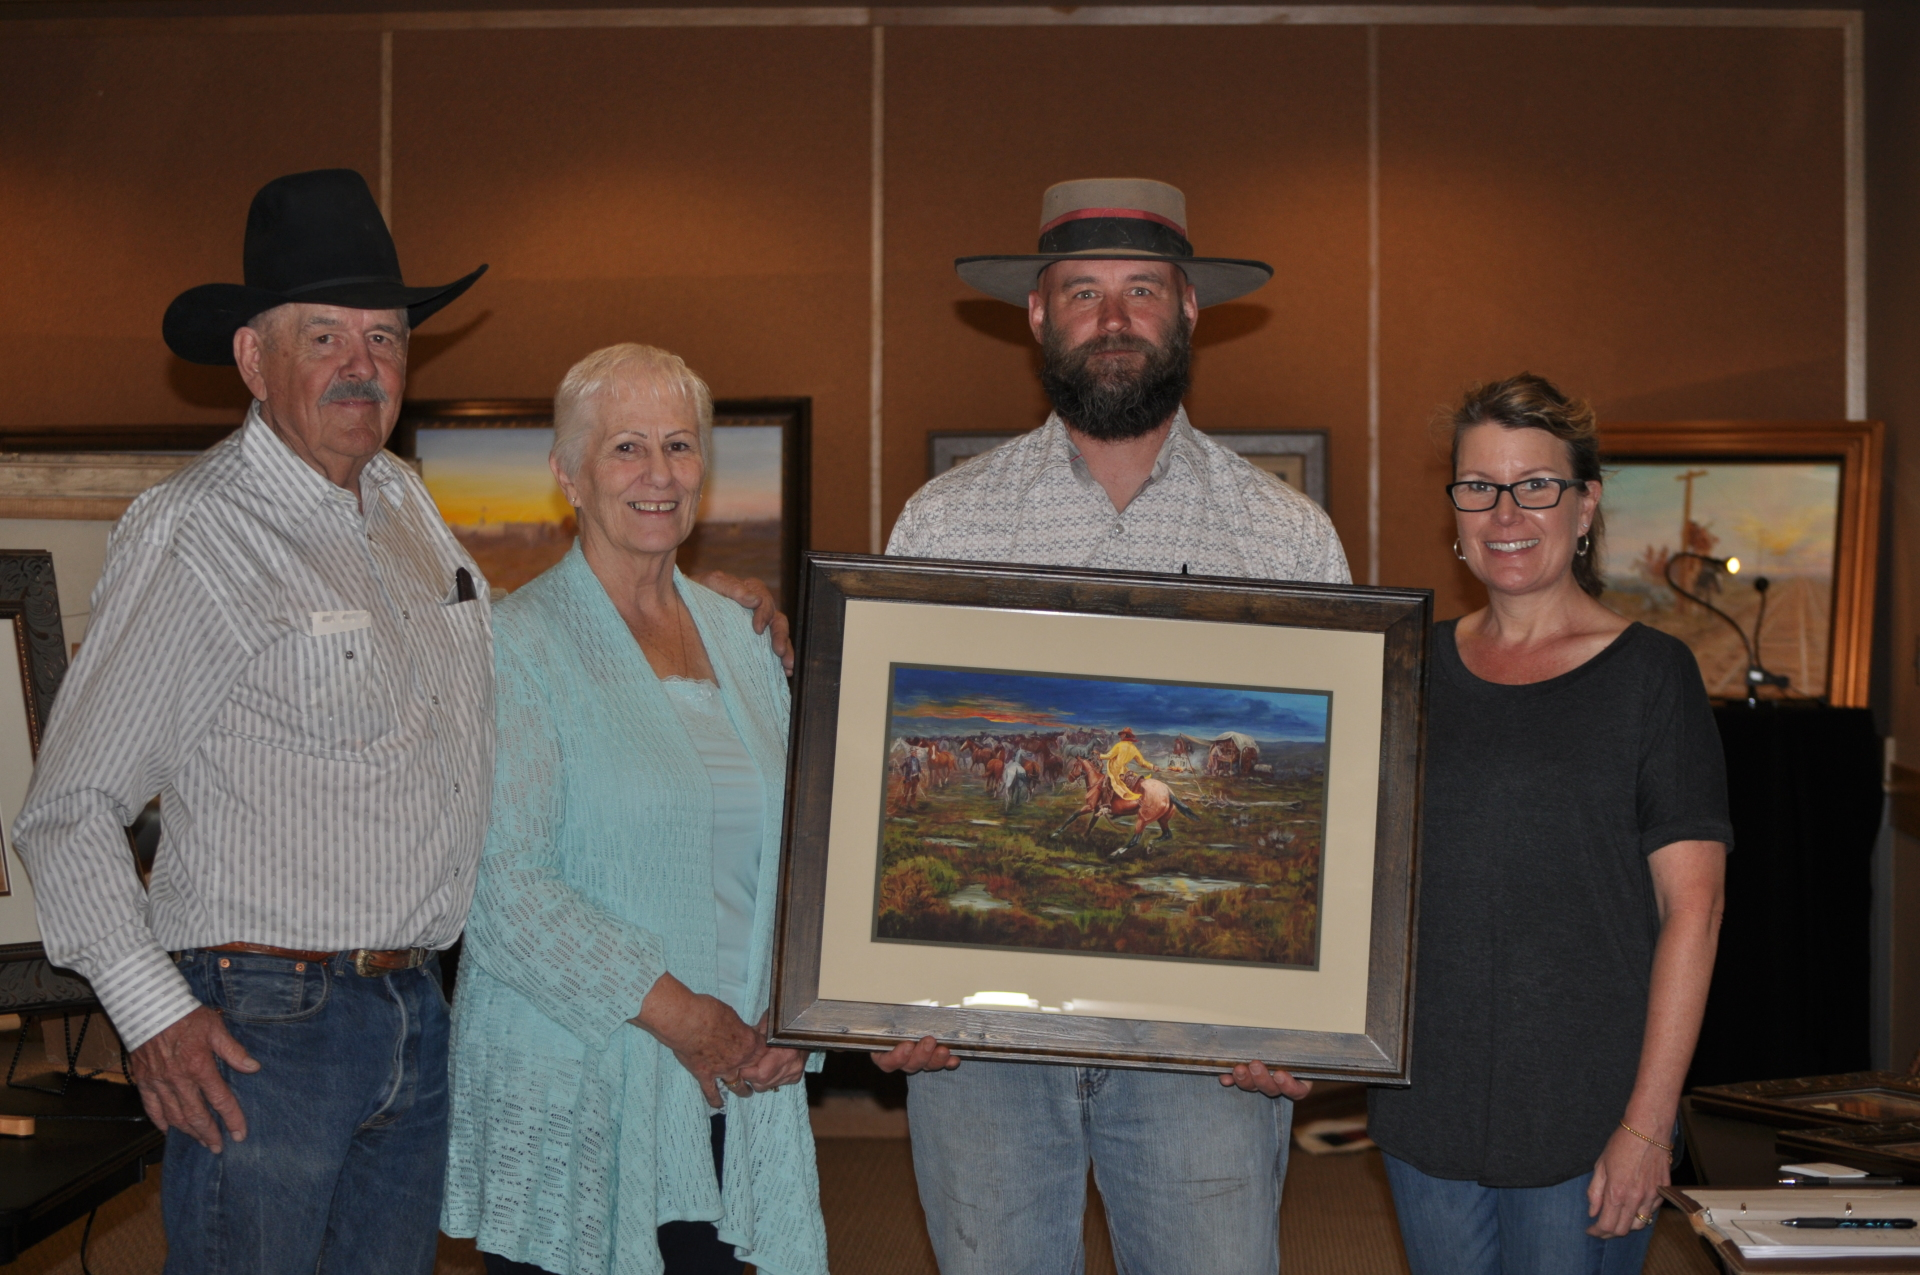 Bringing in the Remuda, Western Art, Len Babb Western Art, Charles M Russel, Old west history, buckaroo, cowboy art